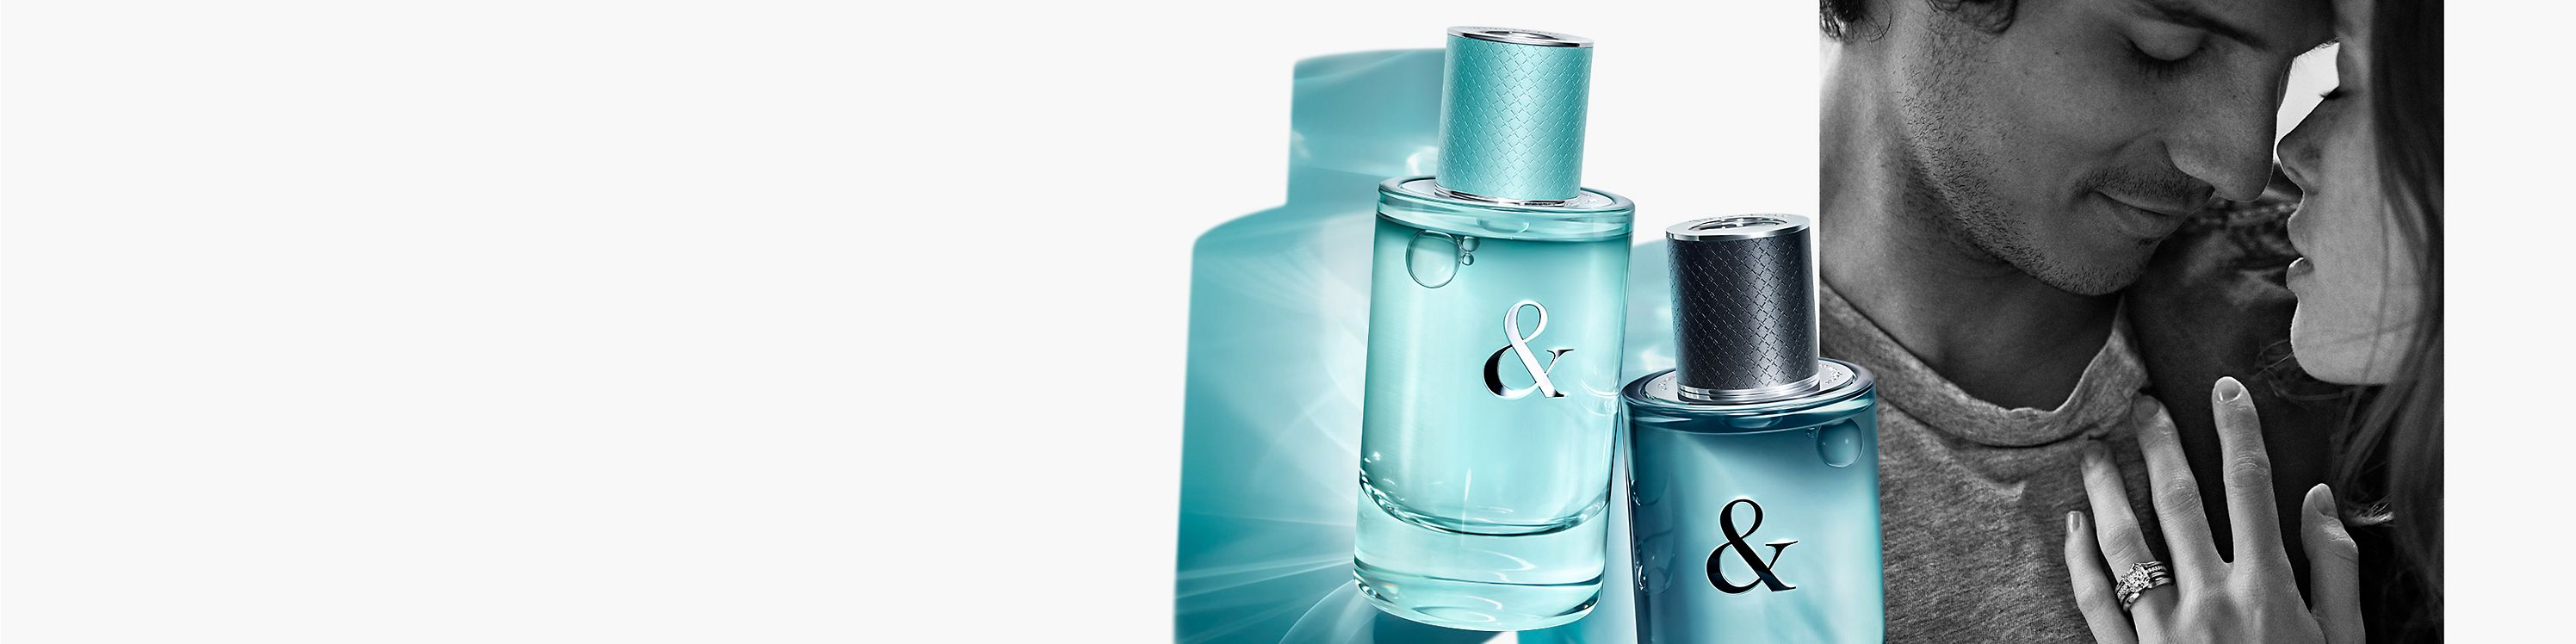 Shop Tiffany & Co. Fragrances